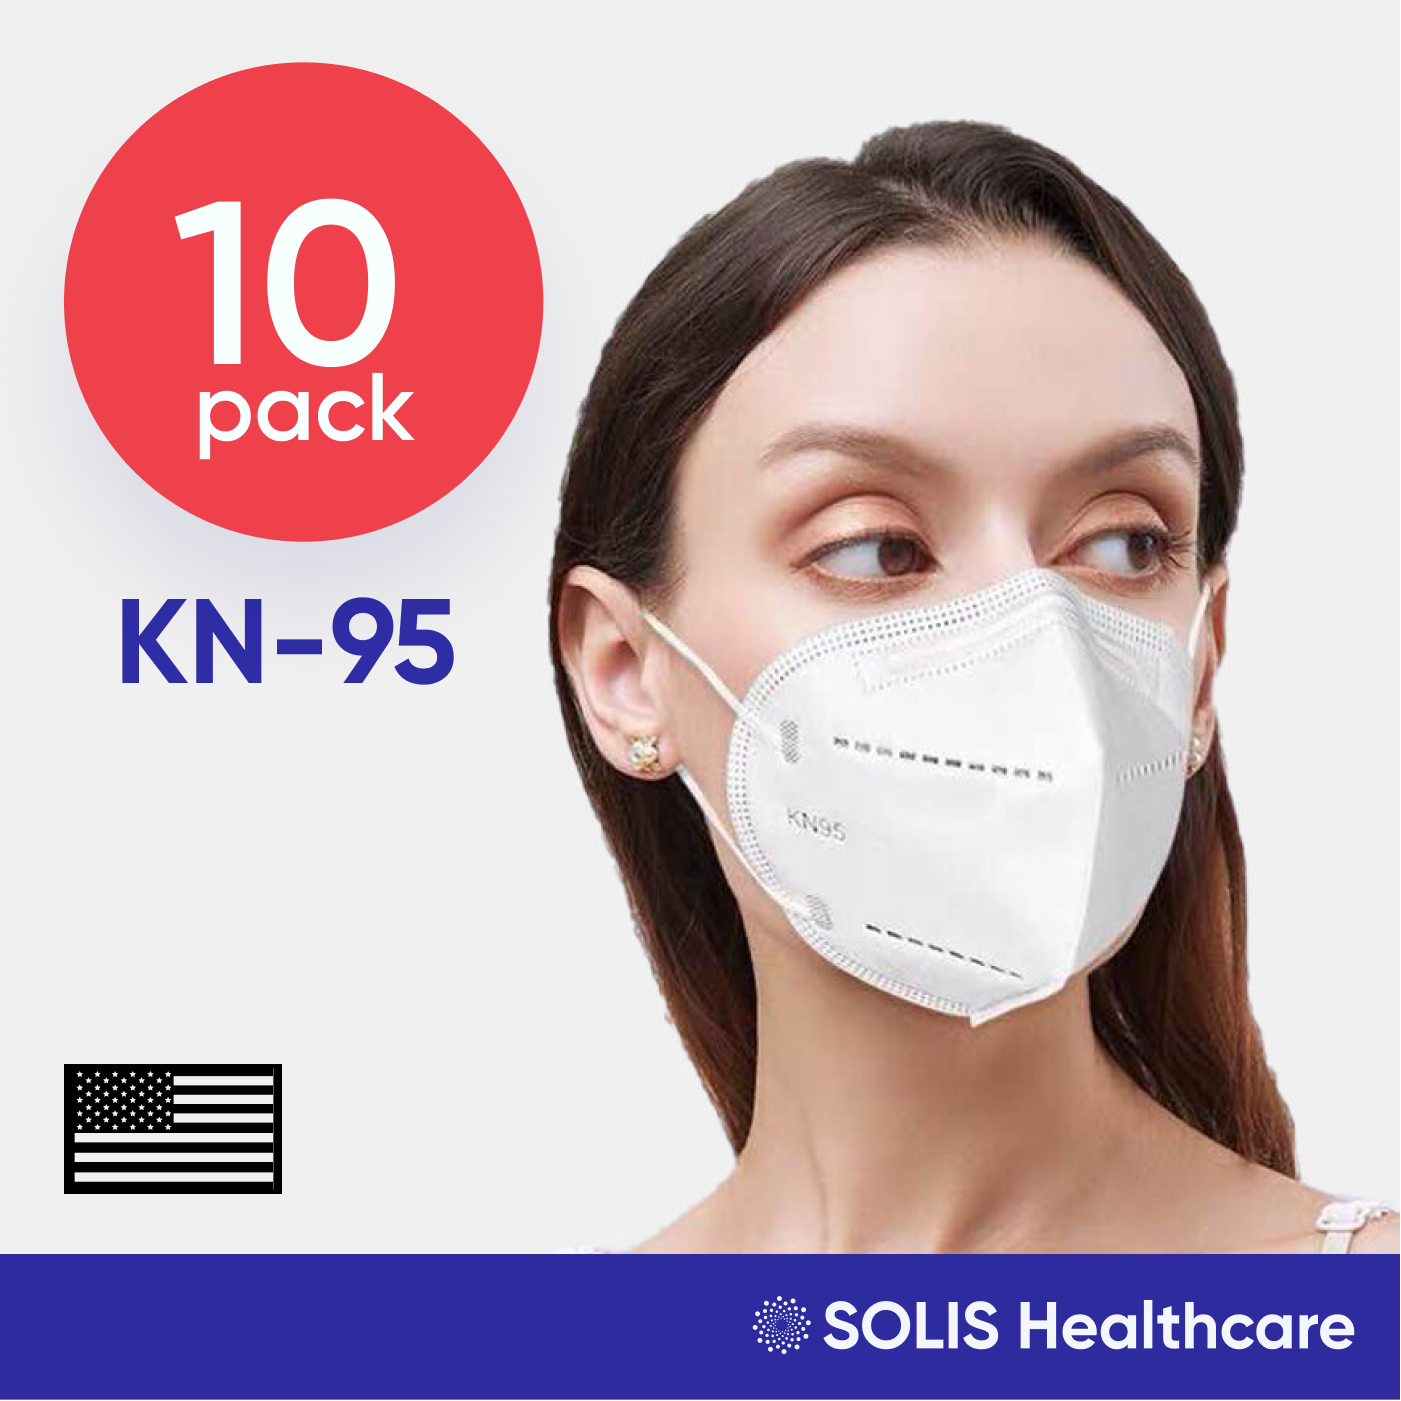 10 Pack KN95 Certified High-Performance 5-Layer Respirator Face Mask Disposable 5